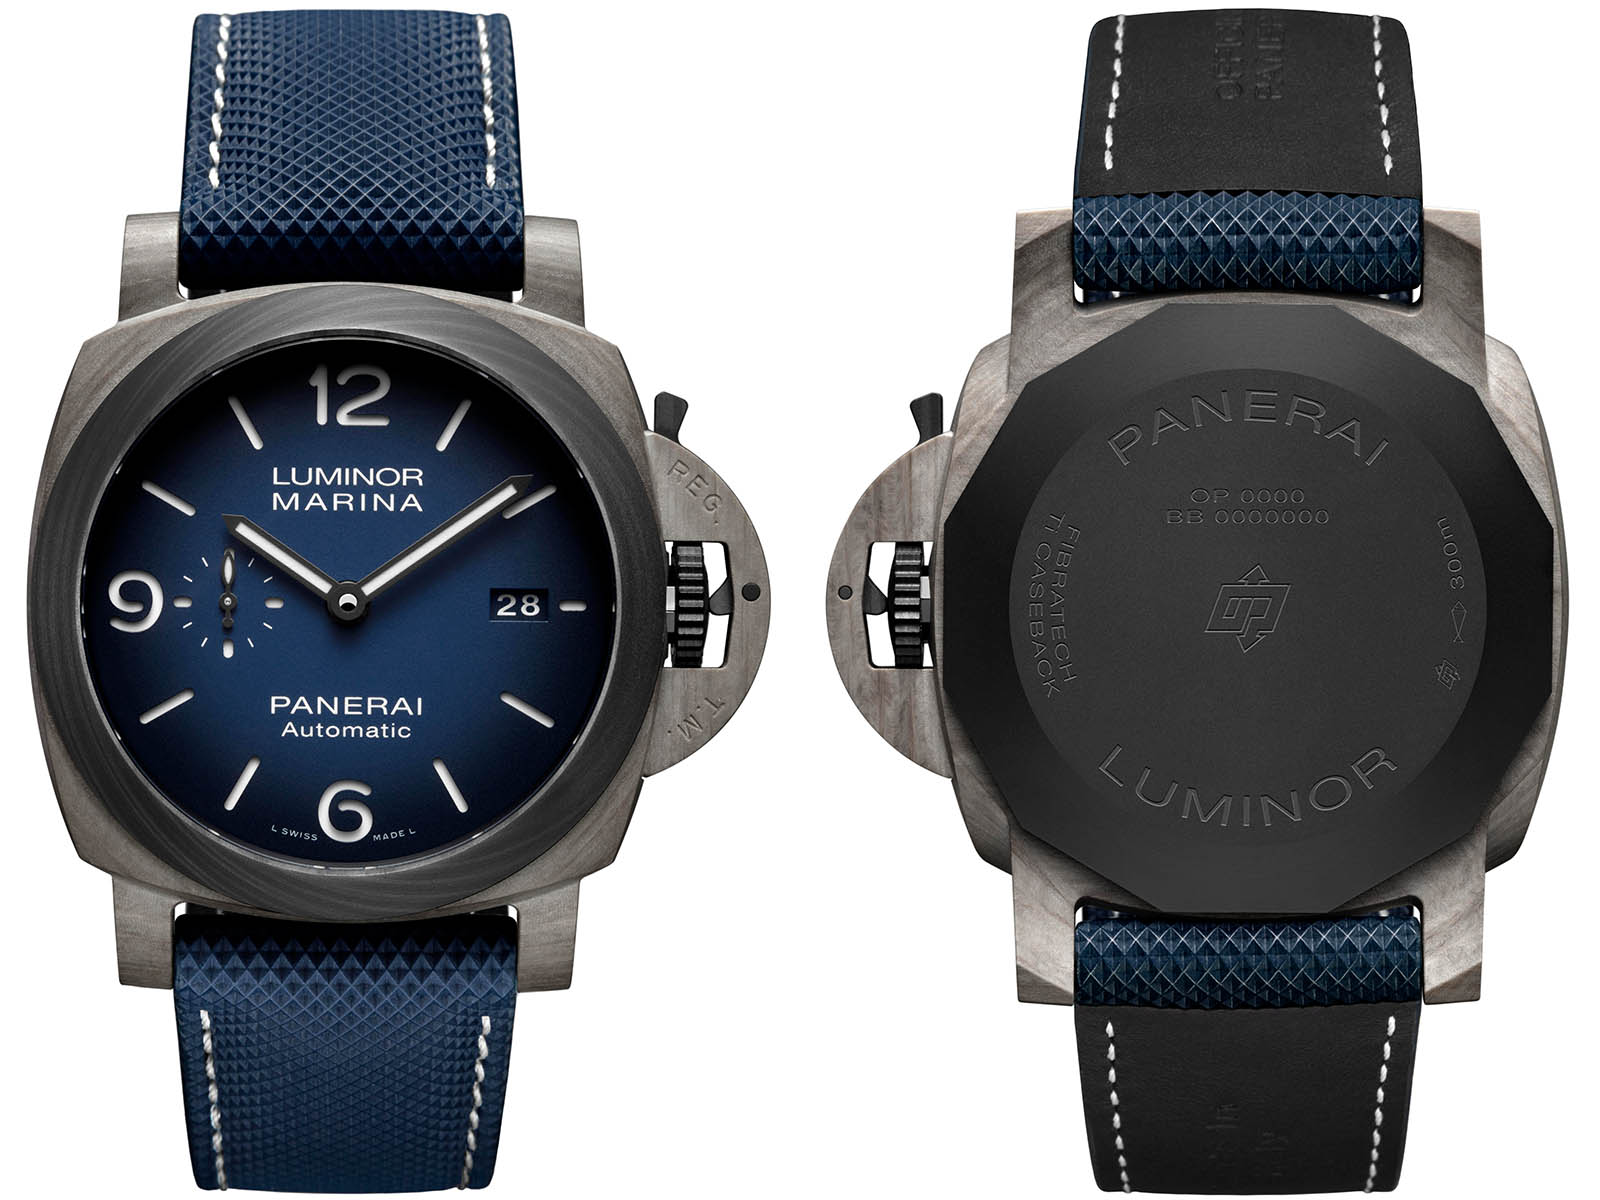 pam01663-officine-panerai-luminor-marina-fibratech-44mm-blue-dial-5.jpg